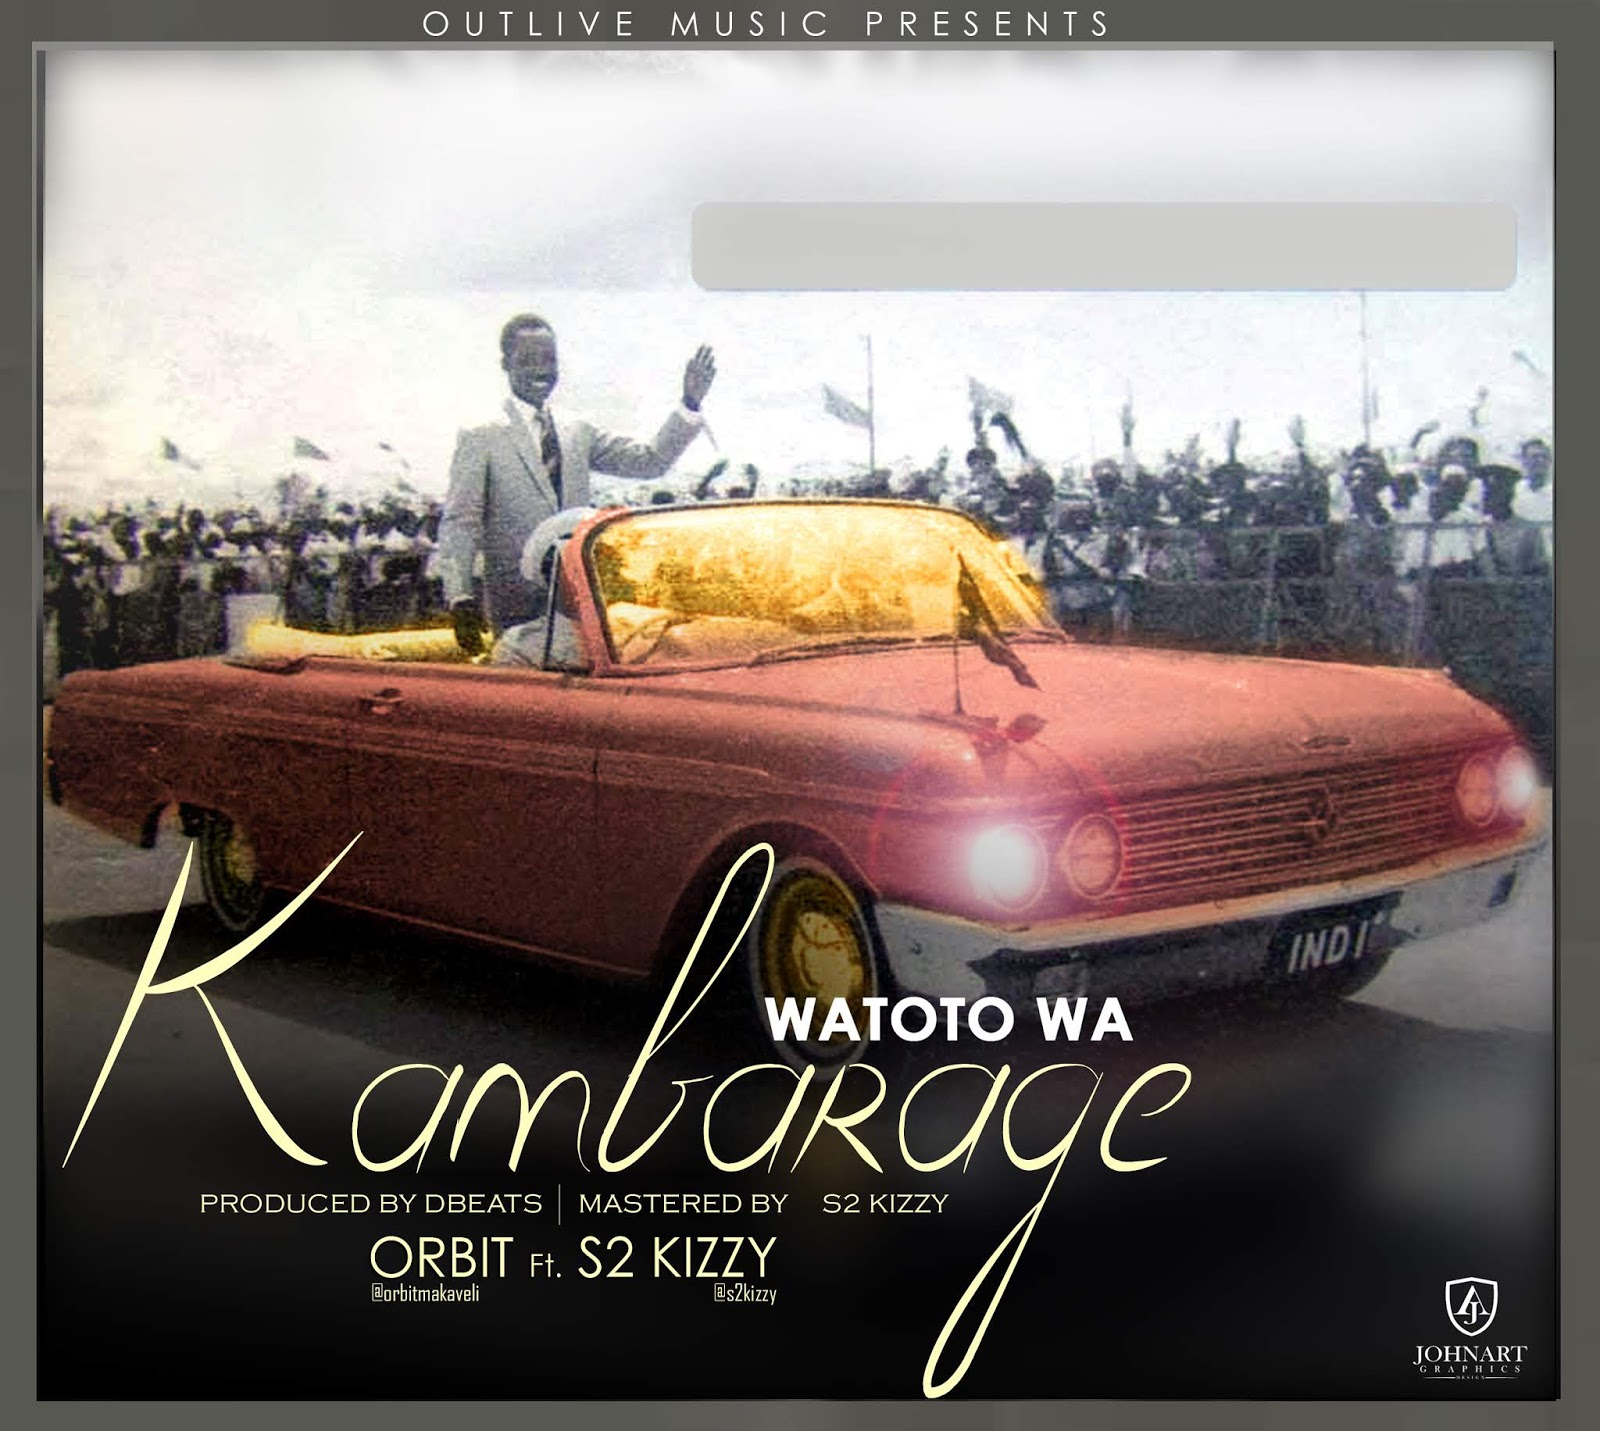 ORBIT Ft. S2KIZZY – WATOTO WA KAMBARAGE